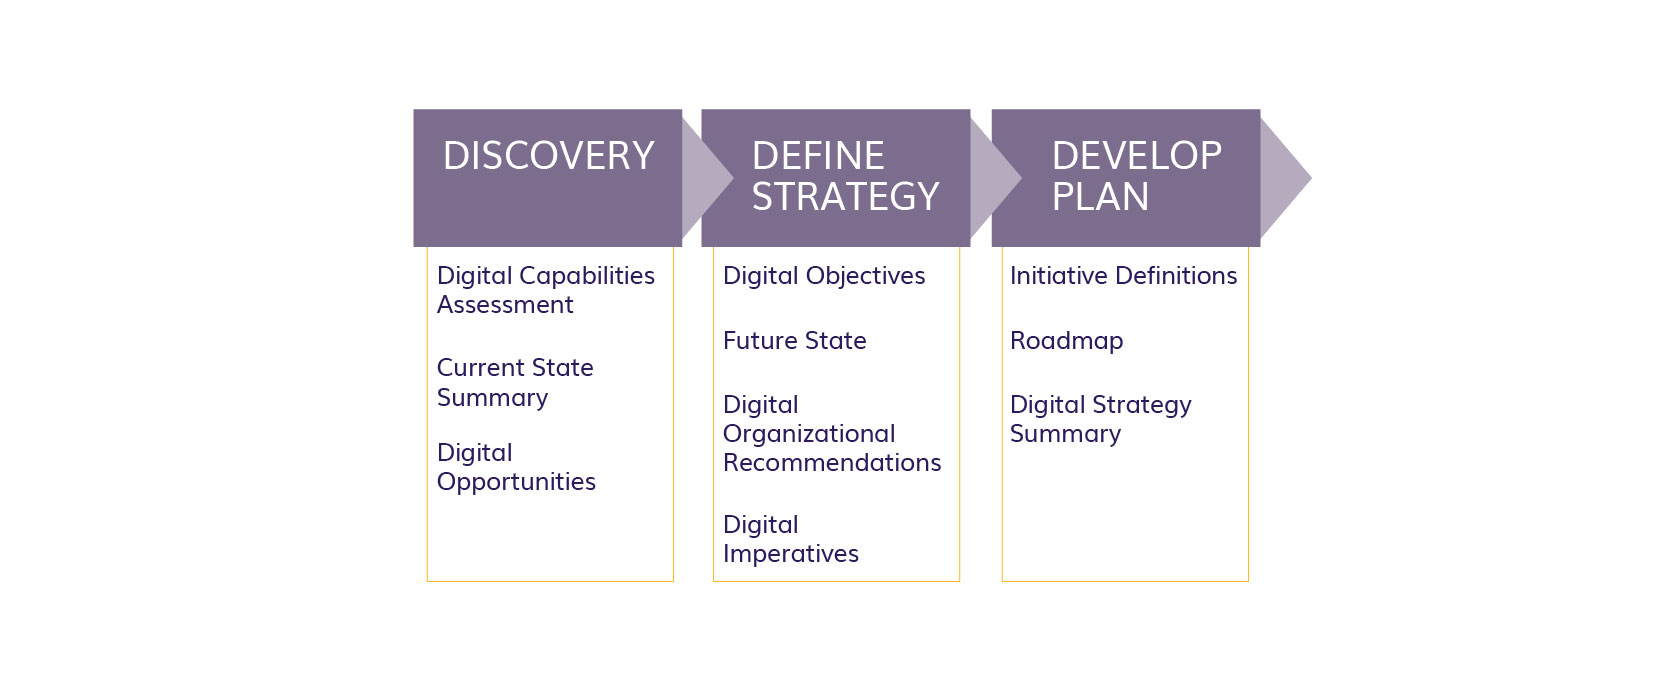 Digital Strategy - Project Approach Graphic - Centric Consulting